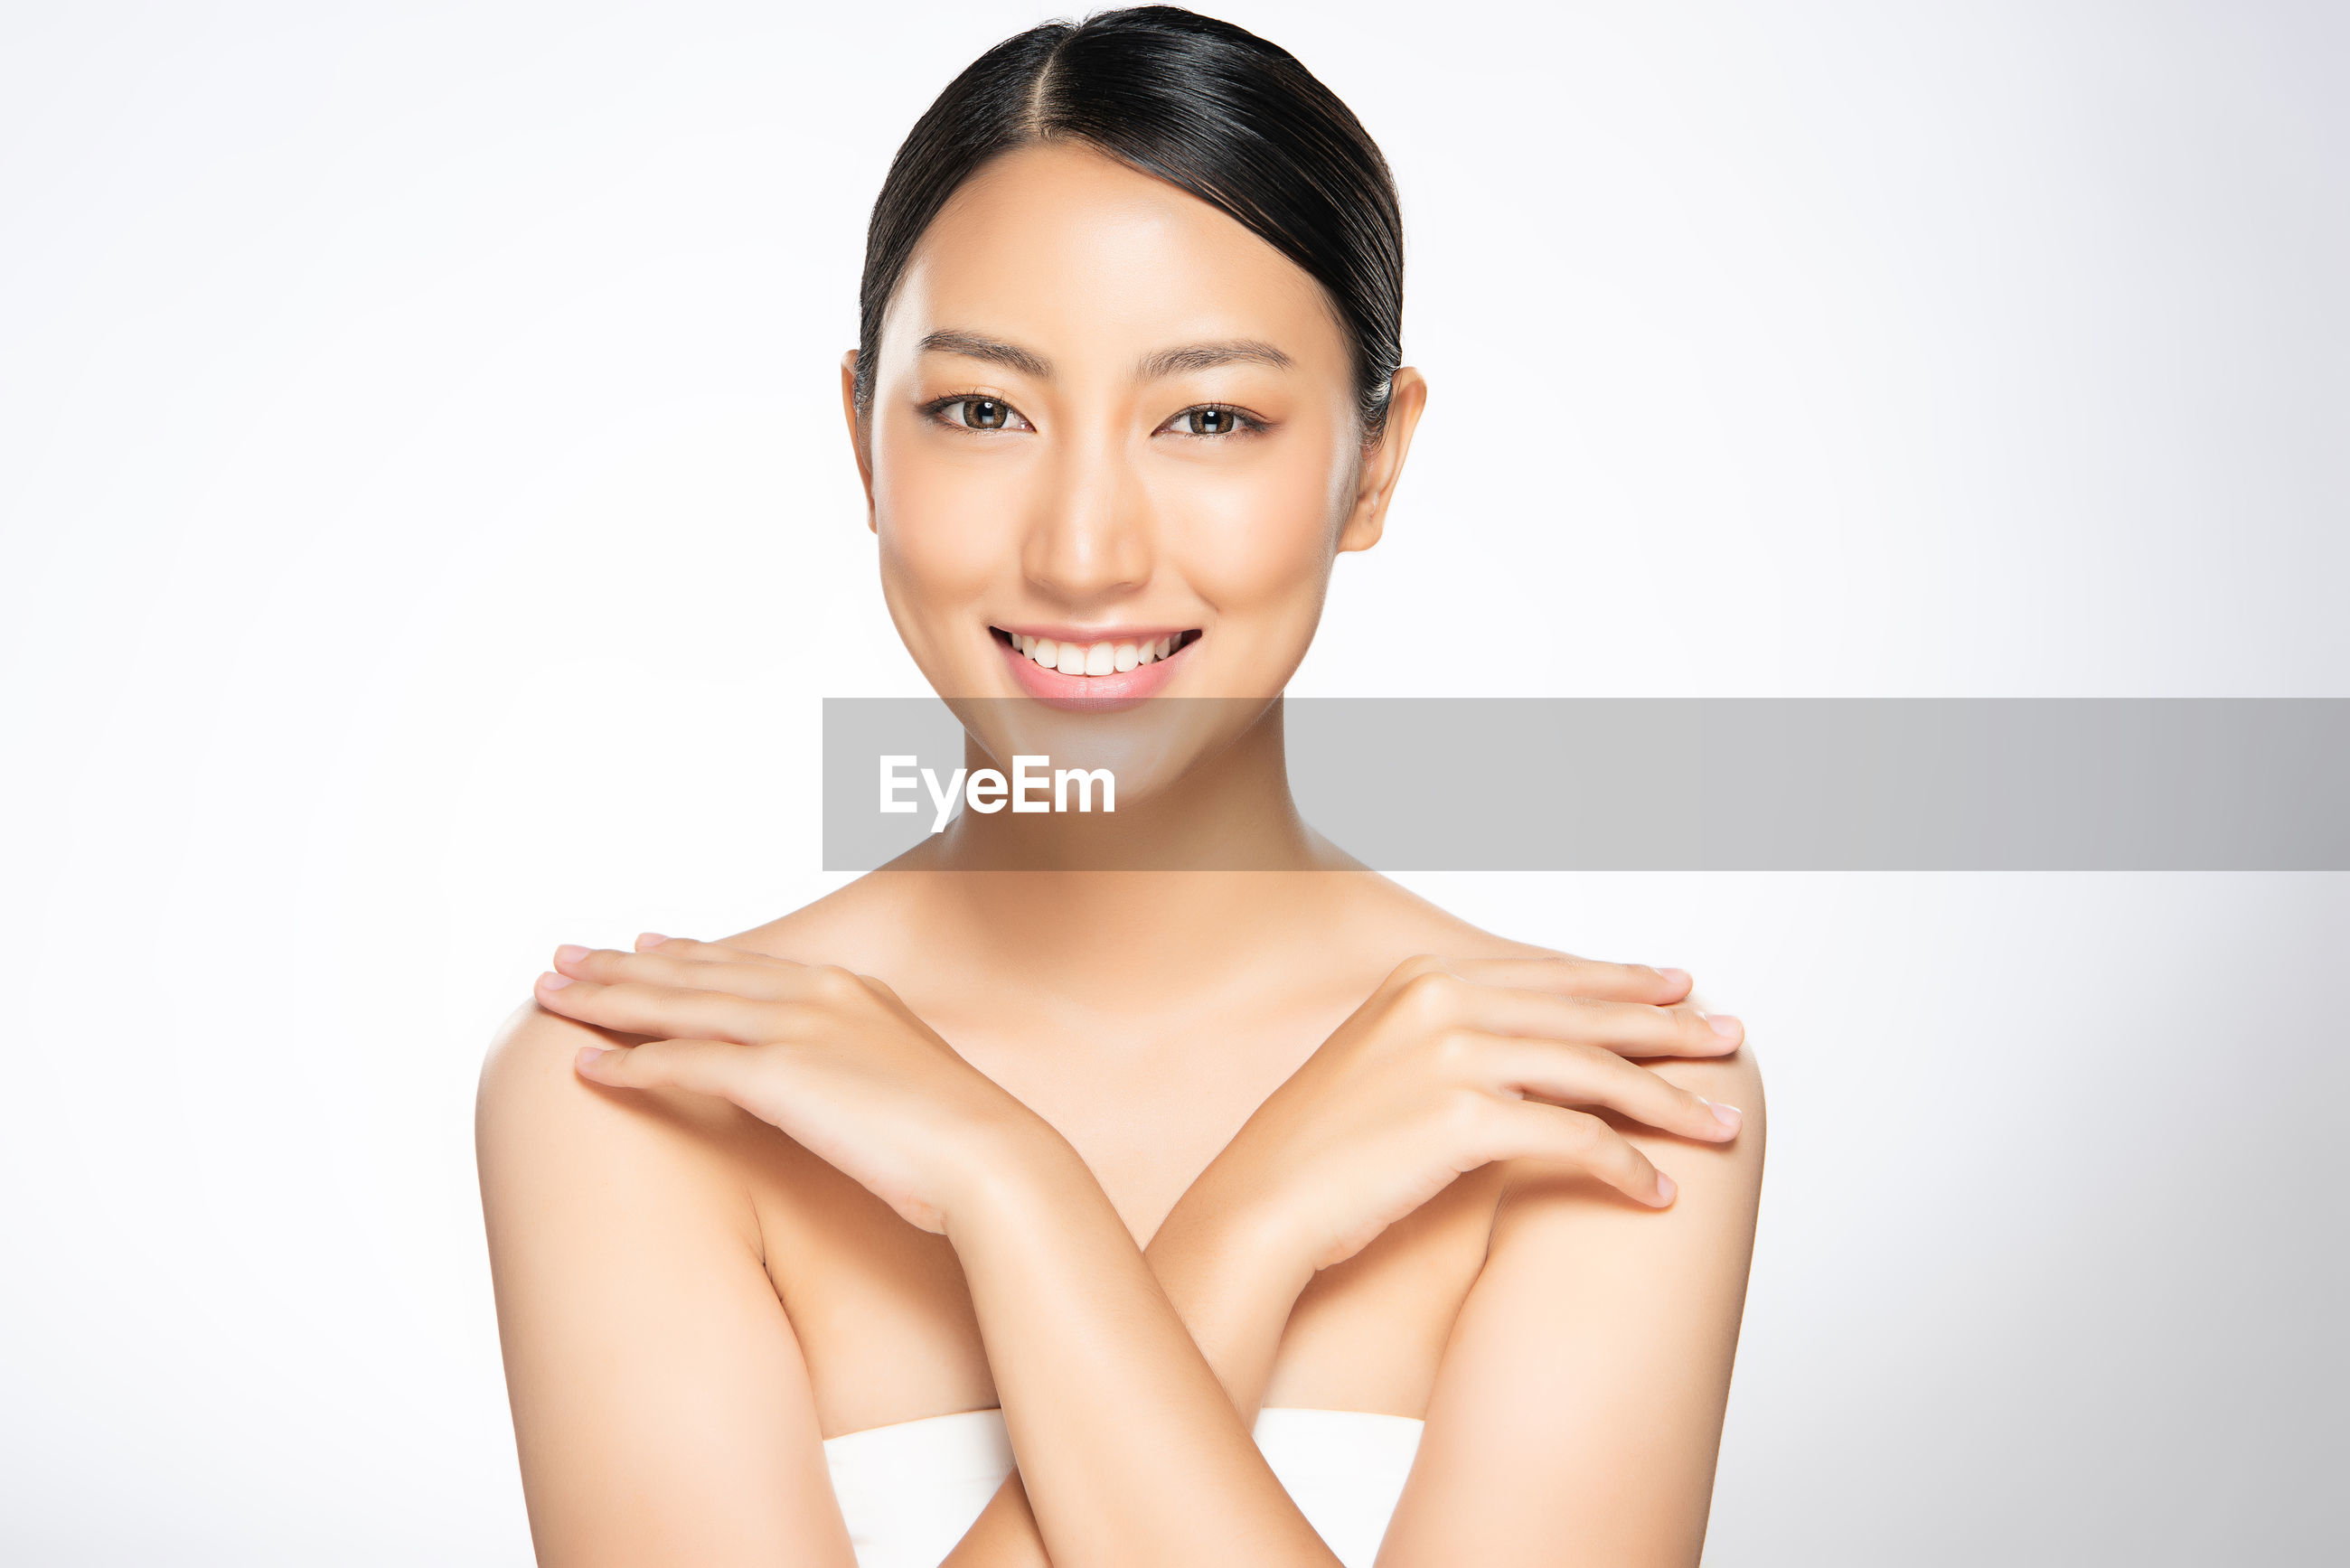 Portrait of smiling beautiful woman against white background